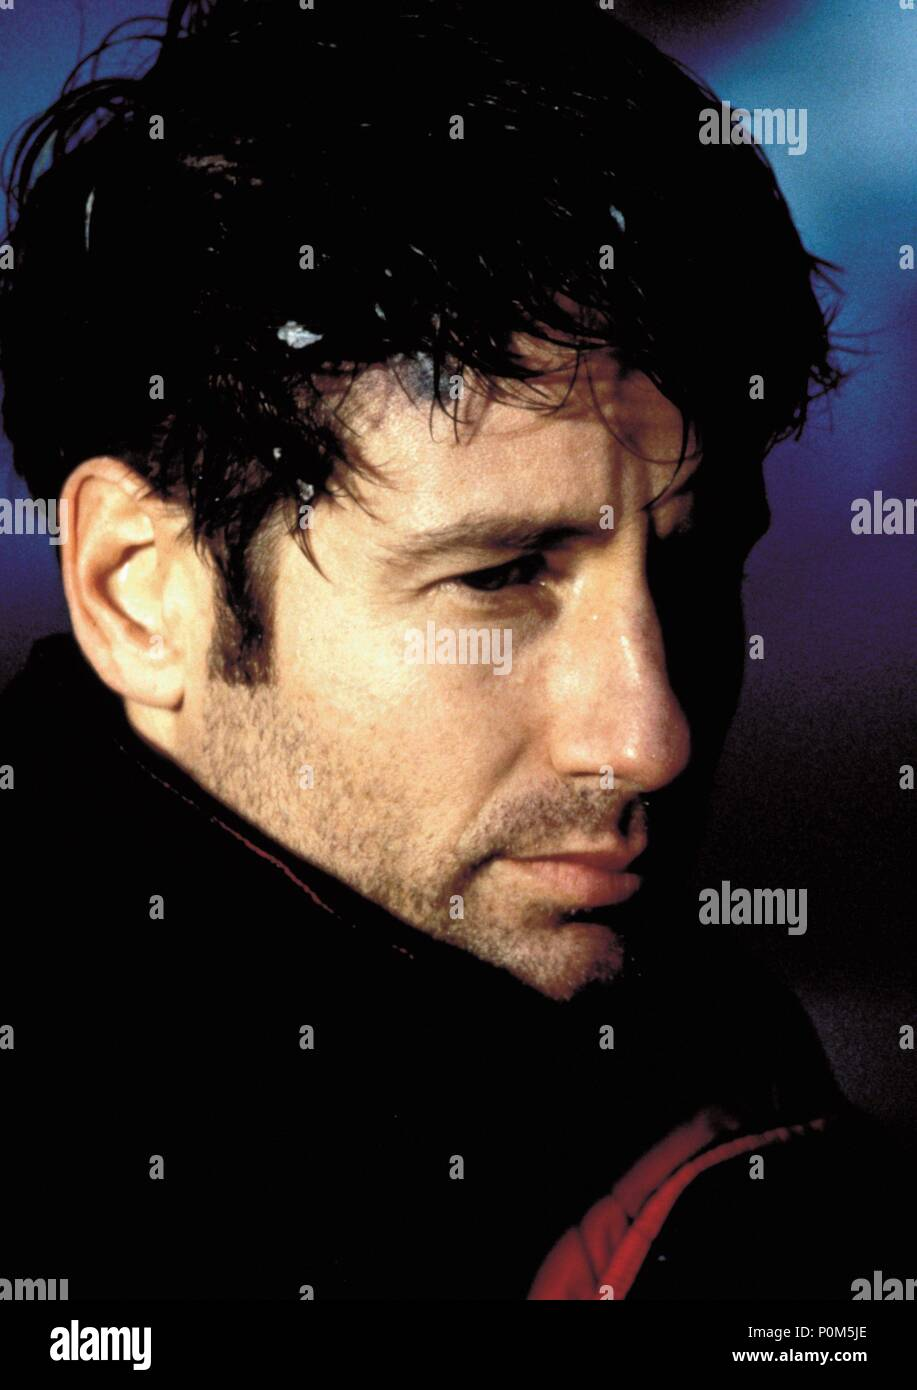 Original Film Title: X-FILES, THE.  English Title: X-FILES, THE.  Film Director: ROB BOWMAN.  Year: 1998.  Stars: DAVID DUCHOVNY. Credit: 20TH CENTURY FOX / Album Stock Photo